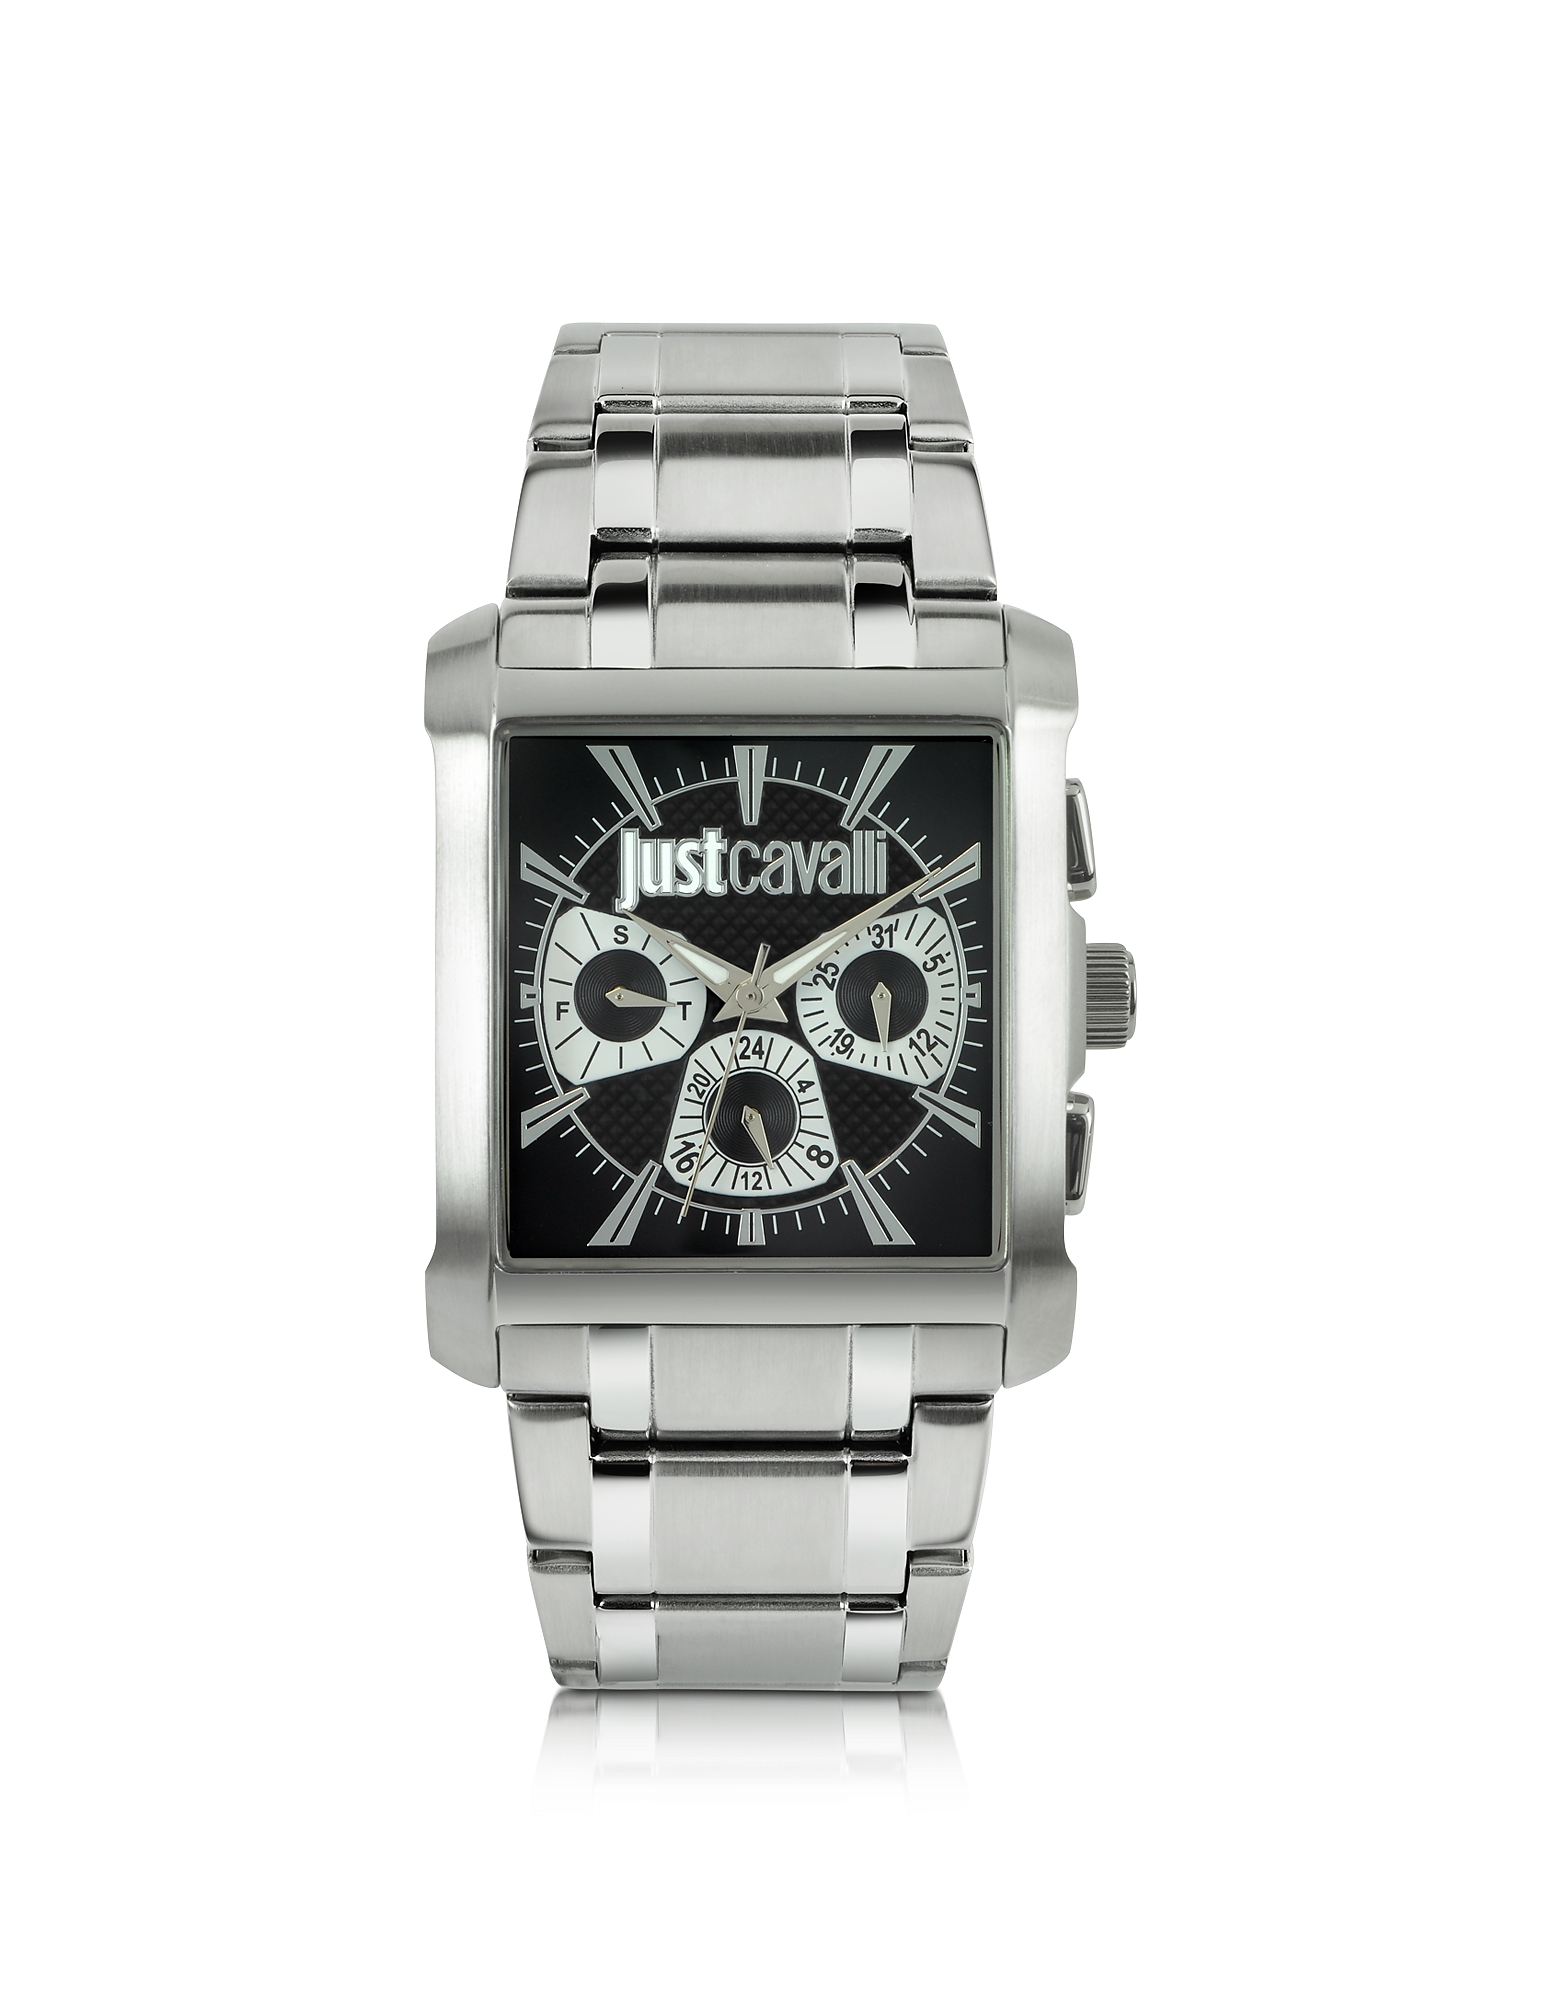 Just Cavalli Men's Watches, Rude Collection Stainless Steel Watch